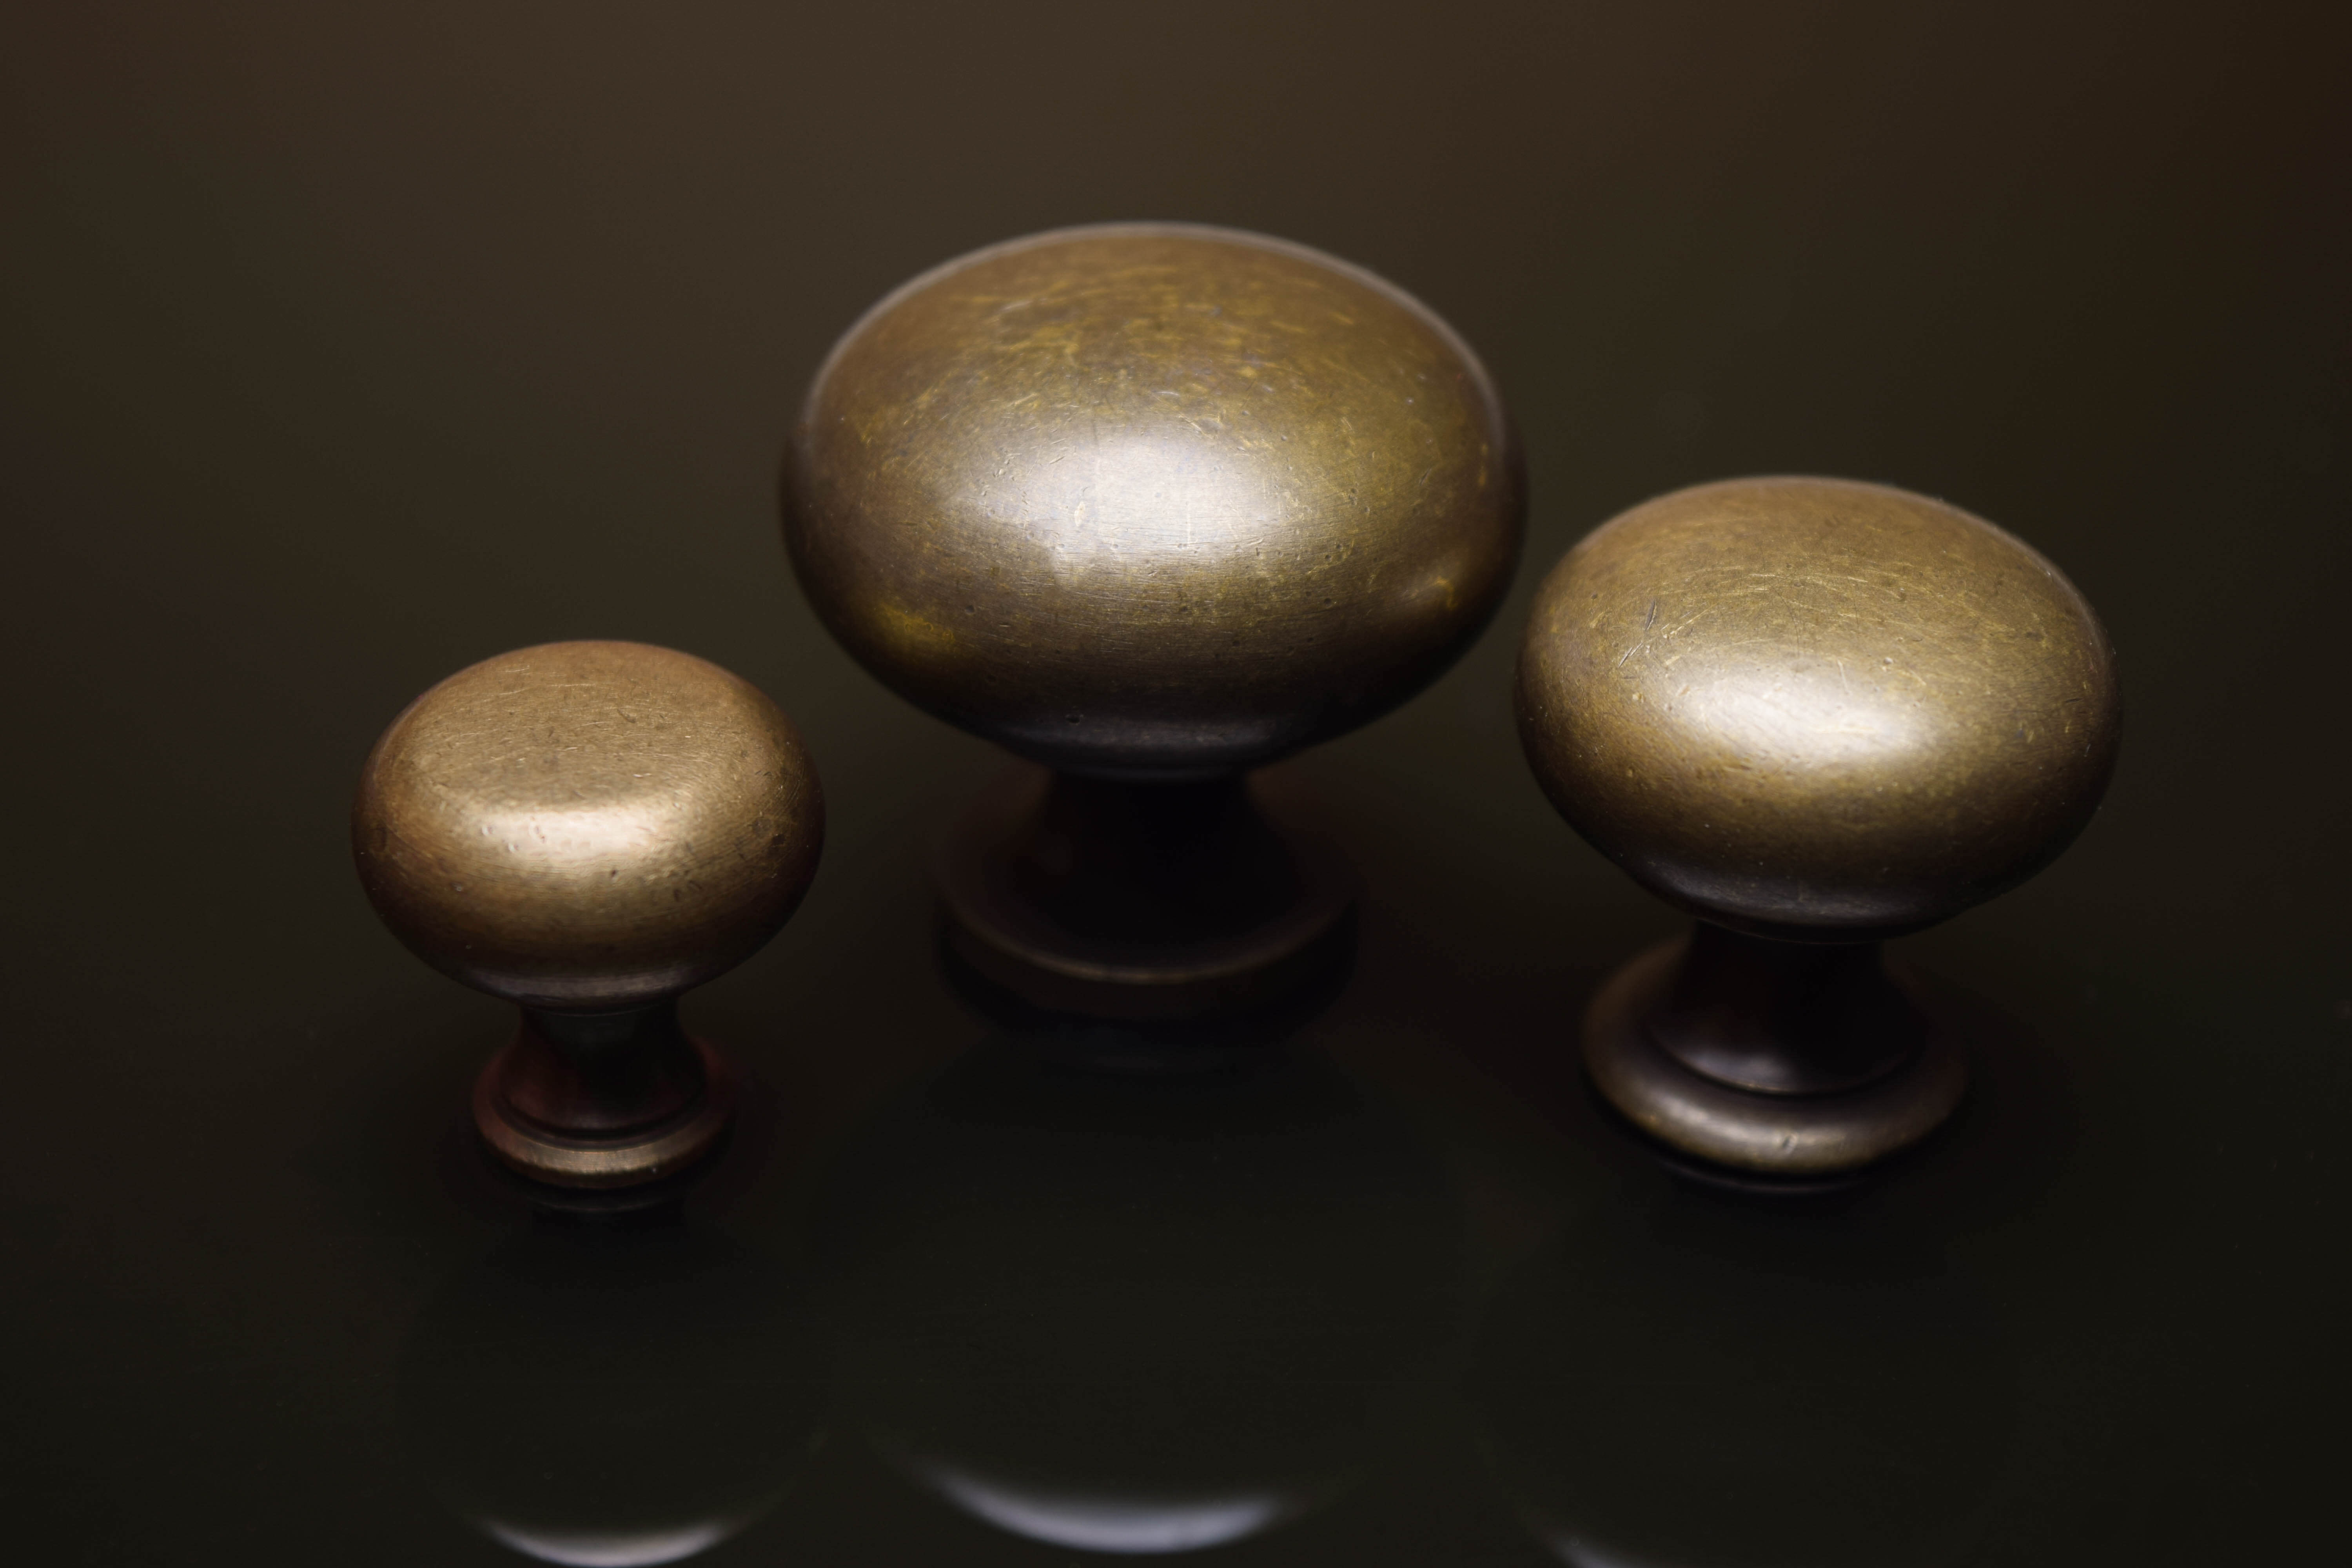 authentic solid brass knobs at Horton Brasses